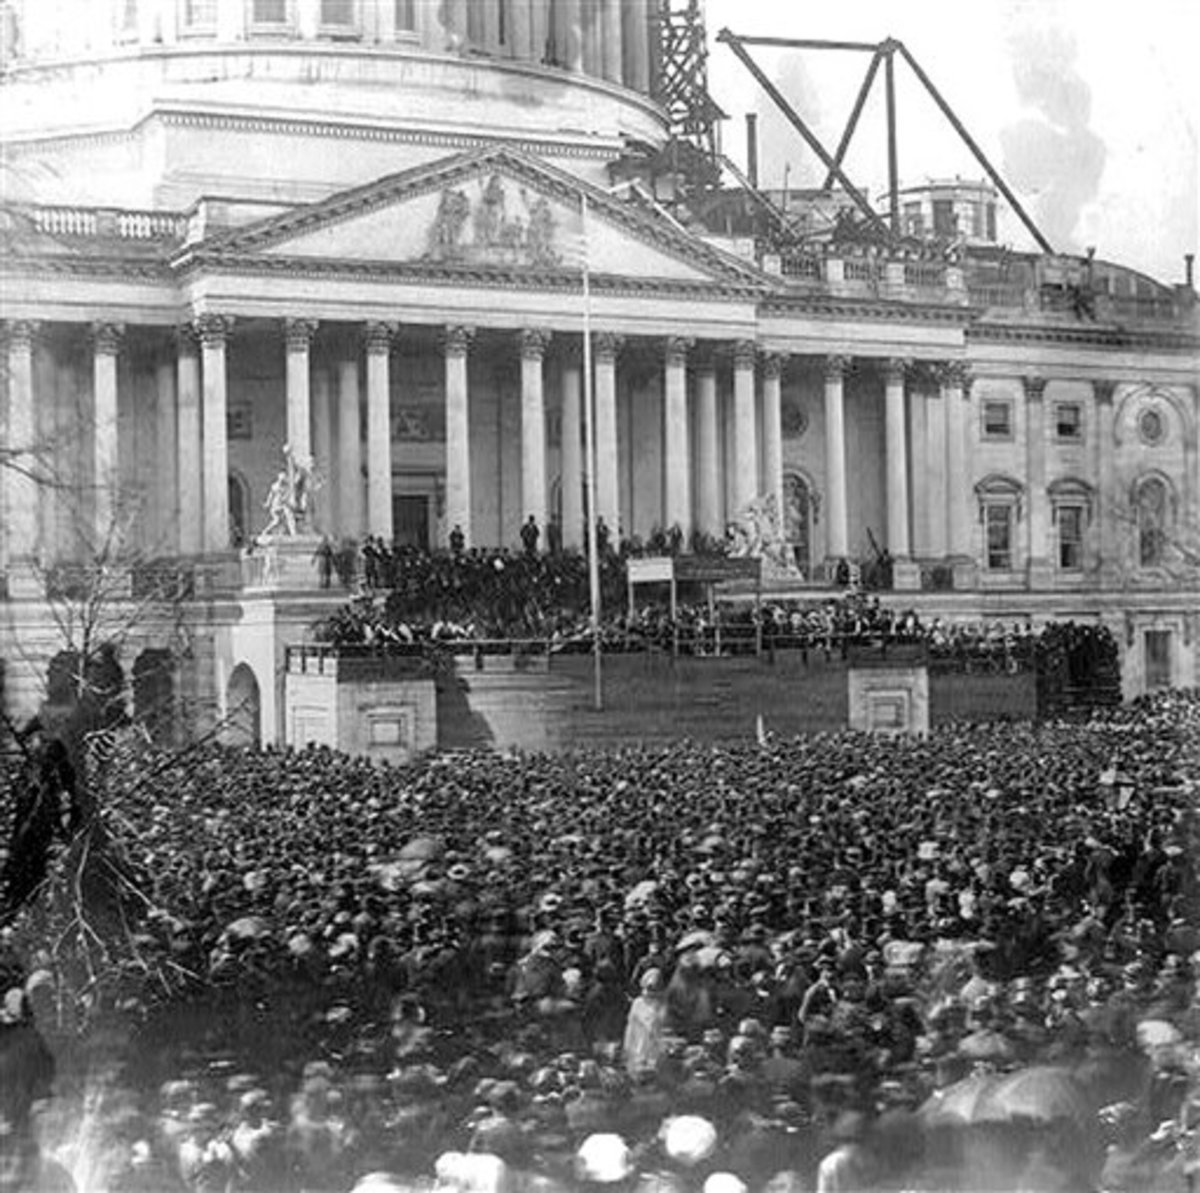 Lincoln's Inauguration in front of the incomplete Capitol Building.